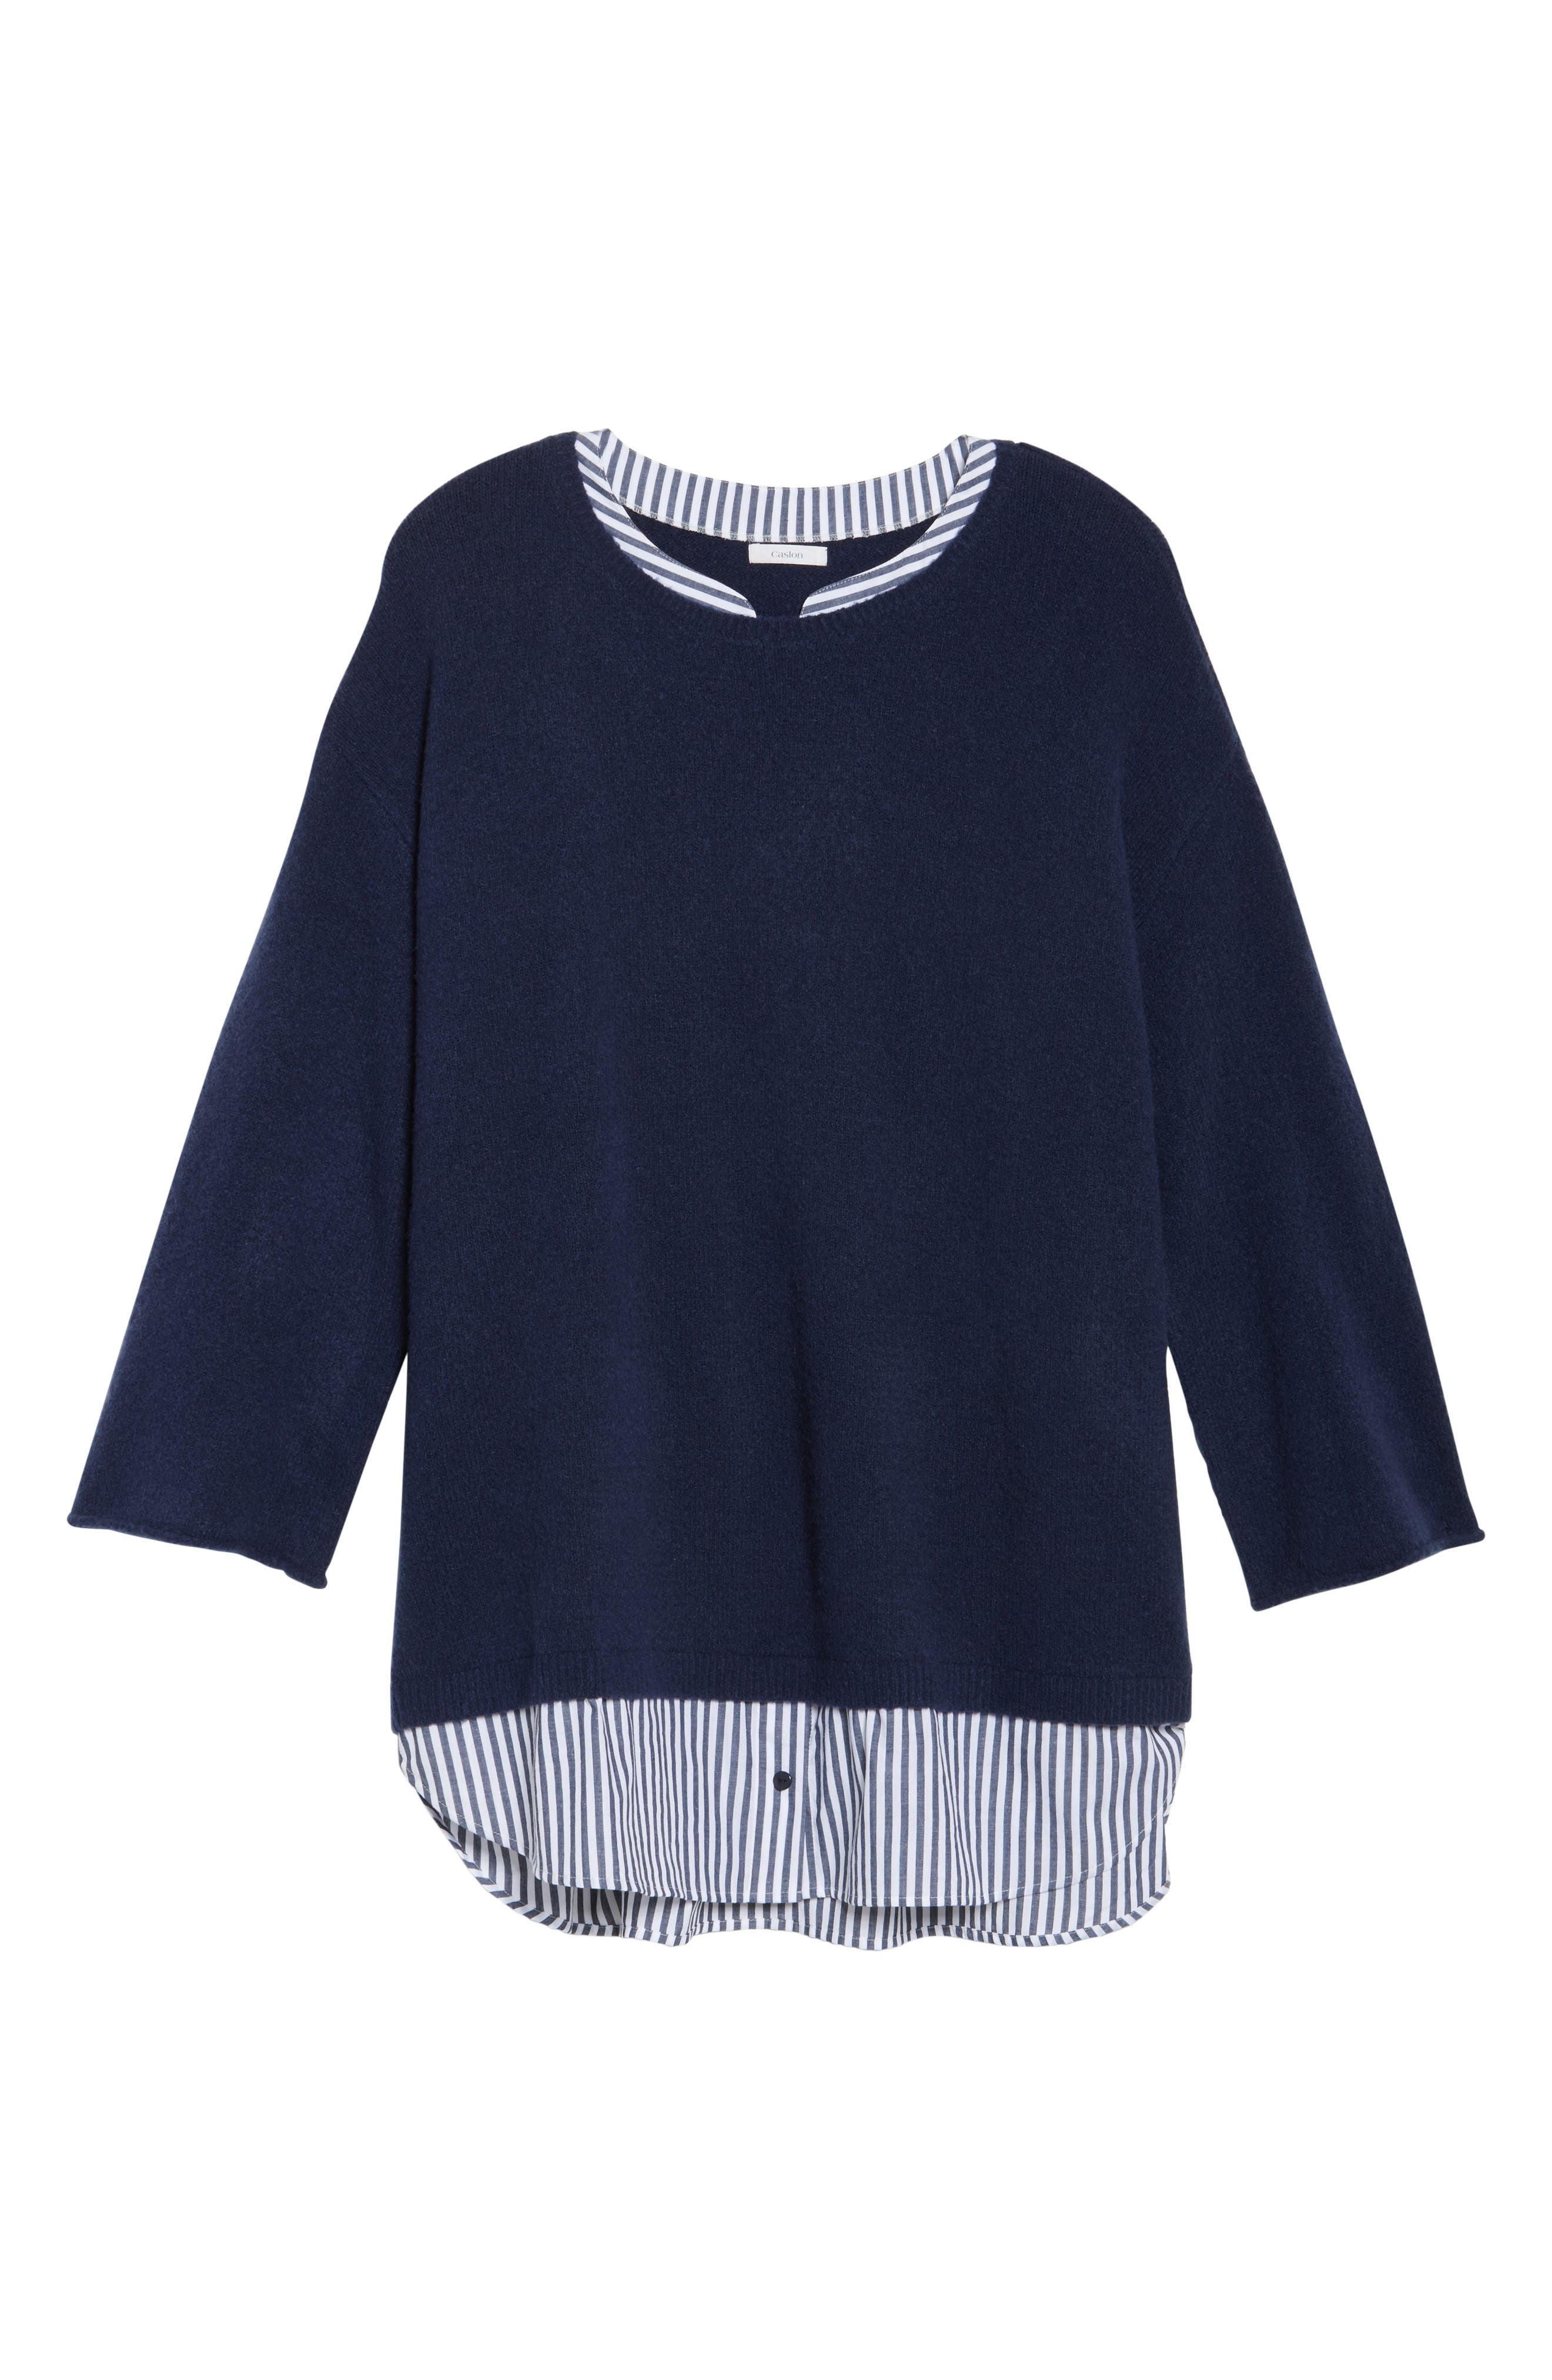 Cozy Layered Sweater,                             Alternate thumbnail 6, color,                             Navy Peacoat